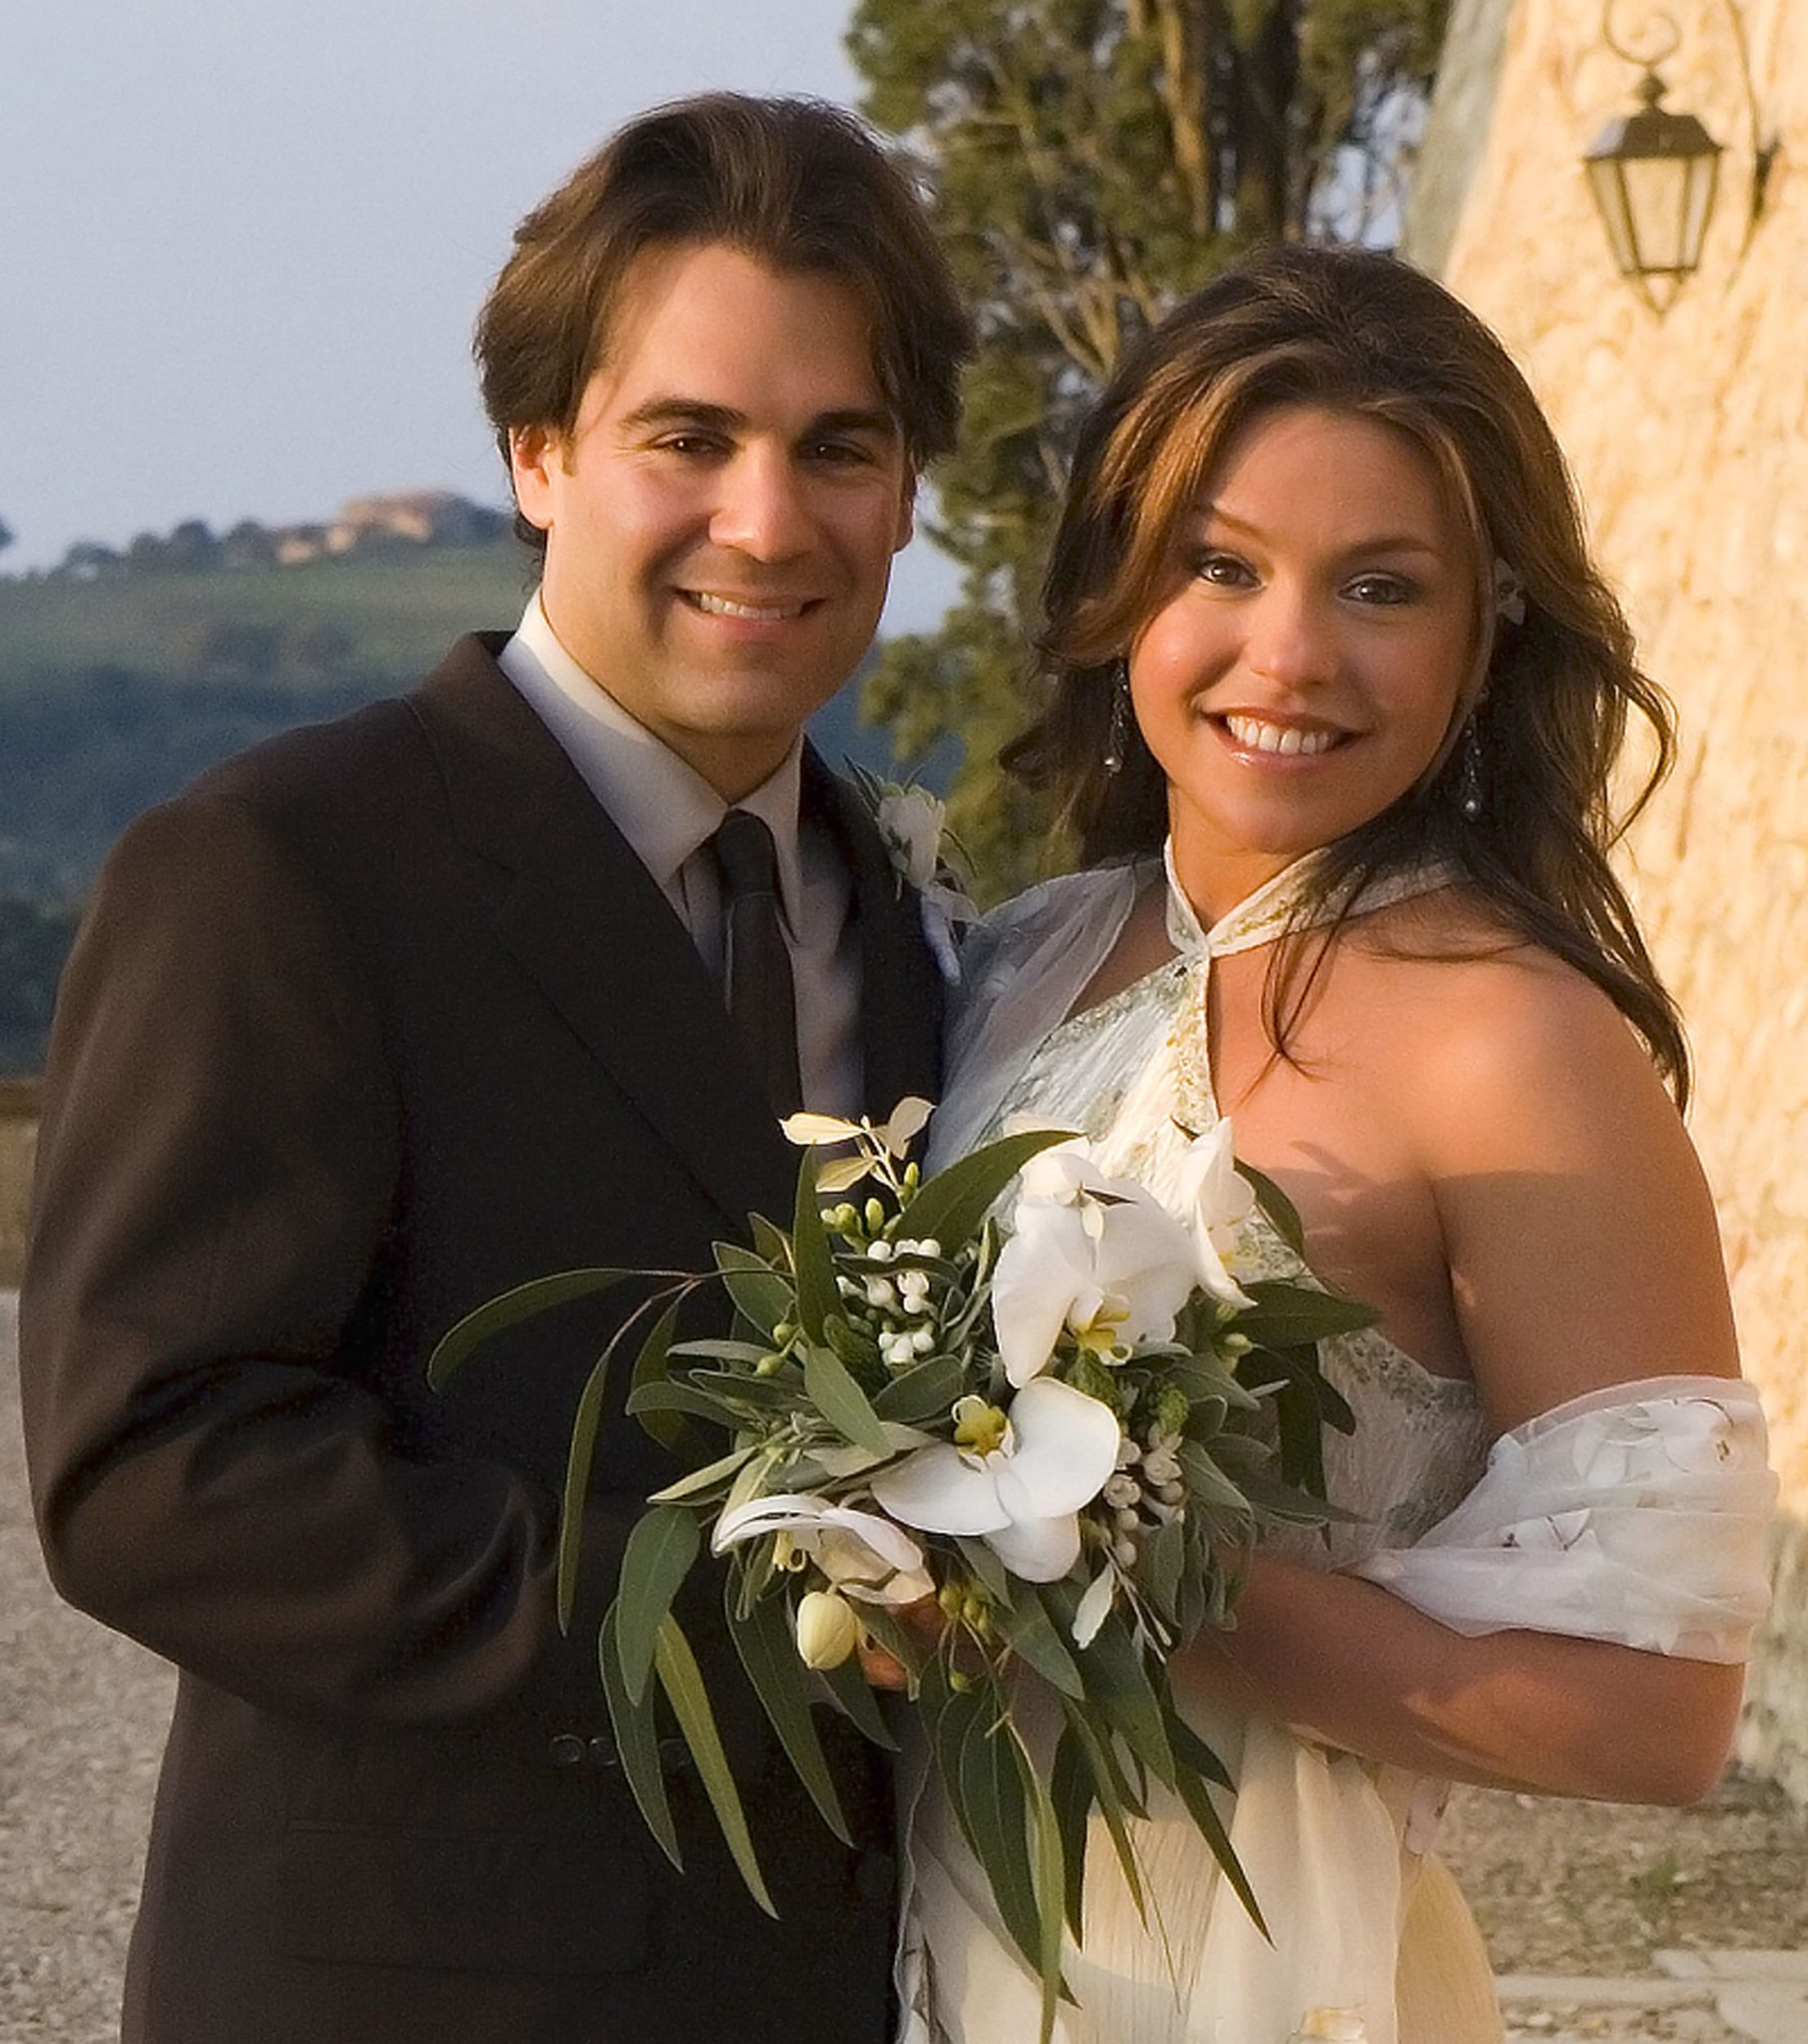 John M Cusimano: Husband Of Rachael Ray, Net Worth, Age